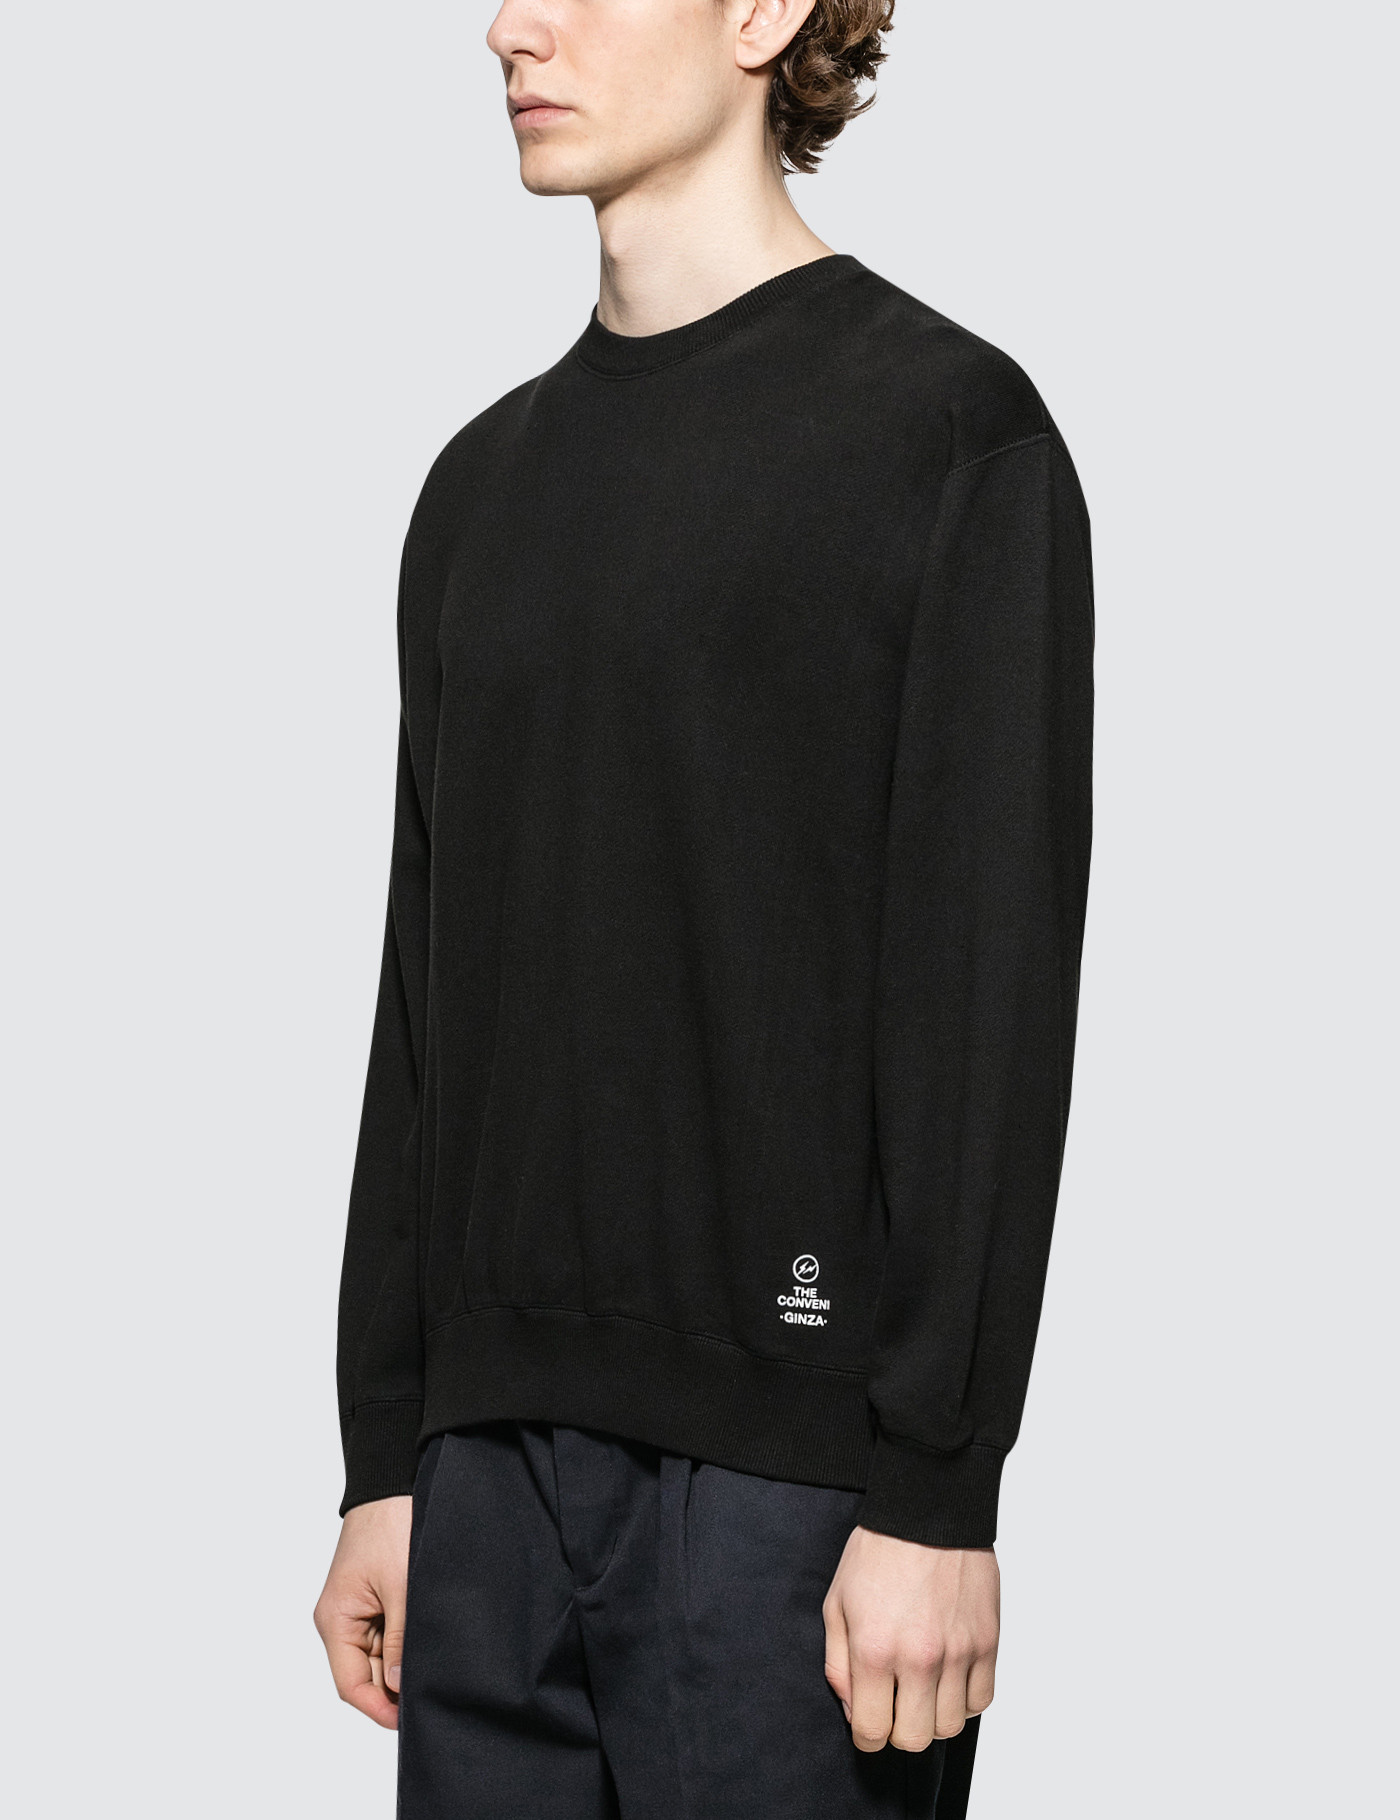 The Conveni FRGMT x  Sweatshirt